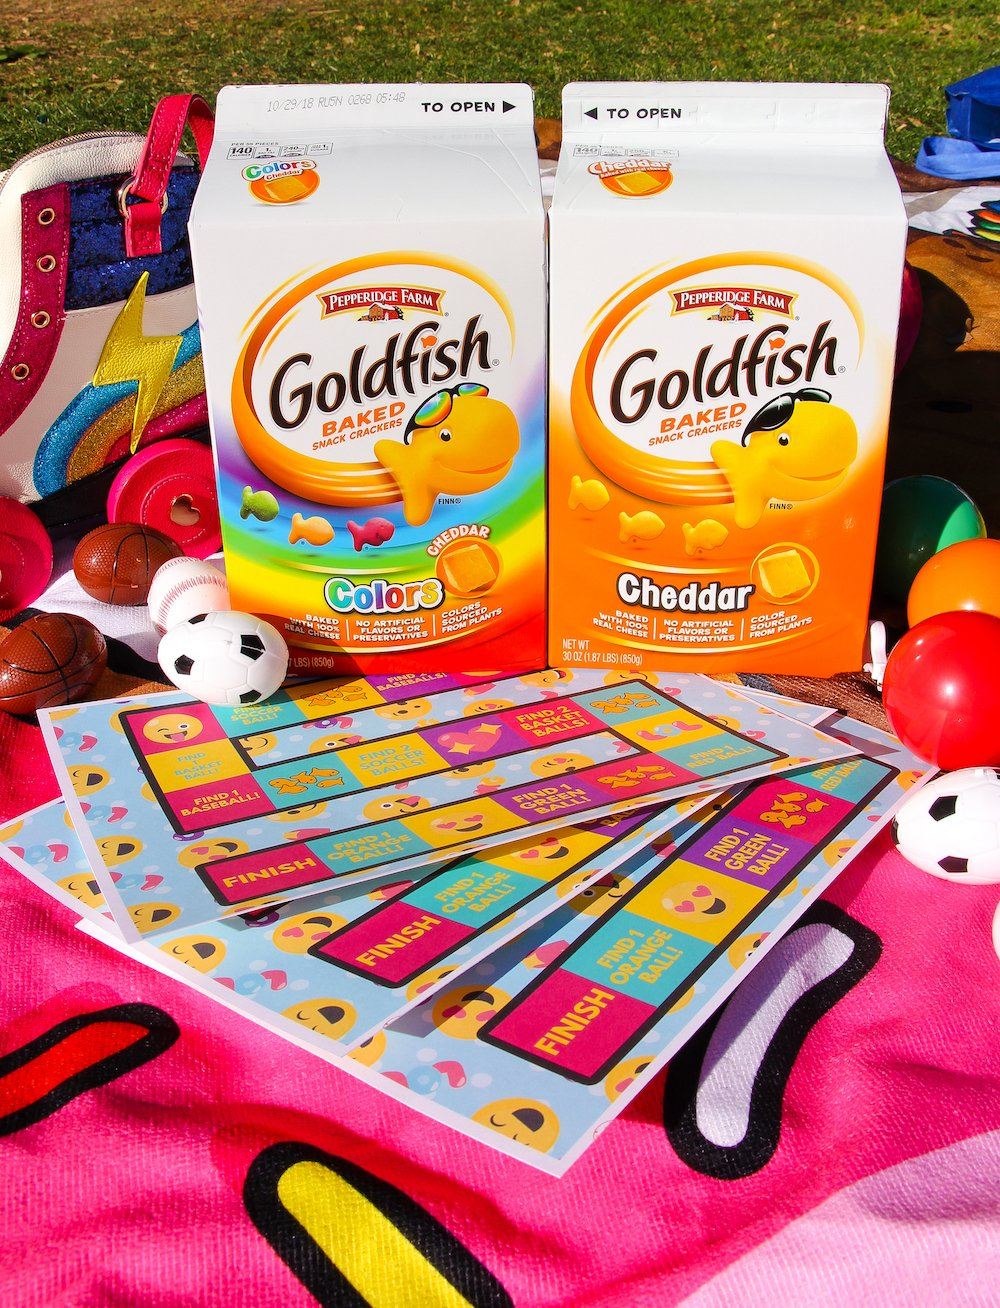 Diy find the goldfish crackers spring time game brite and bubbly shop pepperidge farm goldfish baked snack crackers cheddar 30 oz walmart pepperidge farm goldfish cheddar colors baked snack crackers 30 oz solutioingenieria Image collections